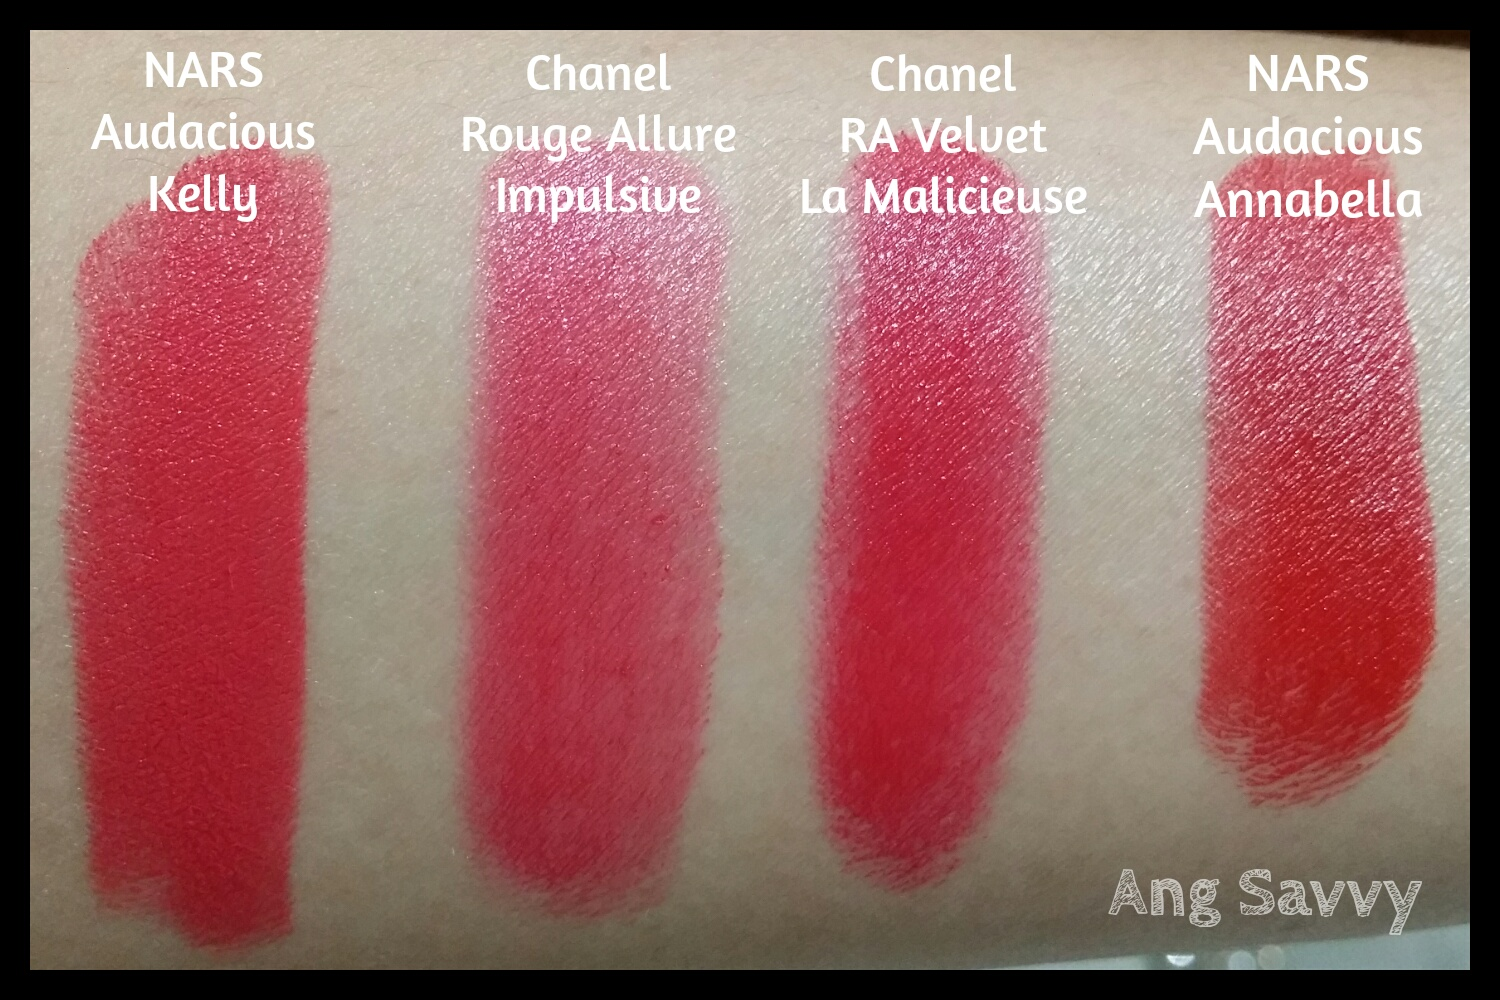 Swatches for NARS Annabella Audacious Lipstick